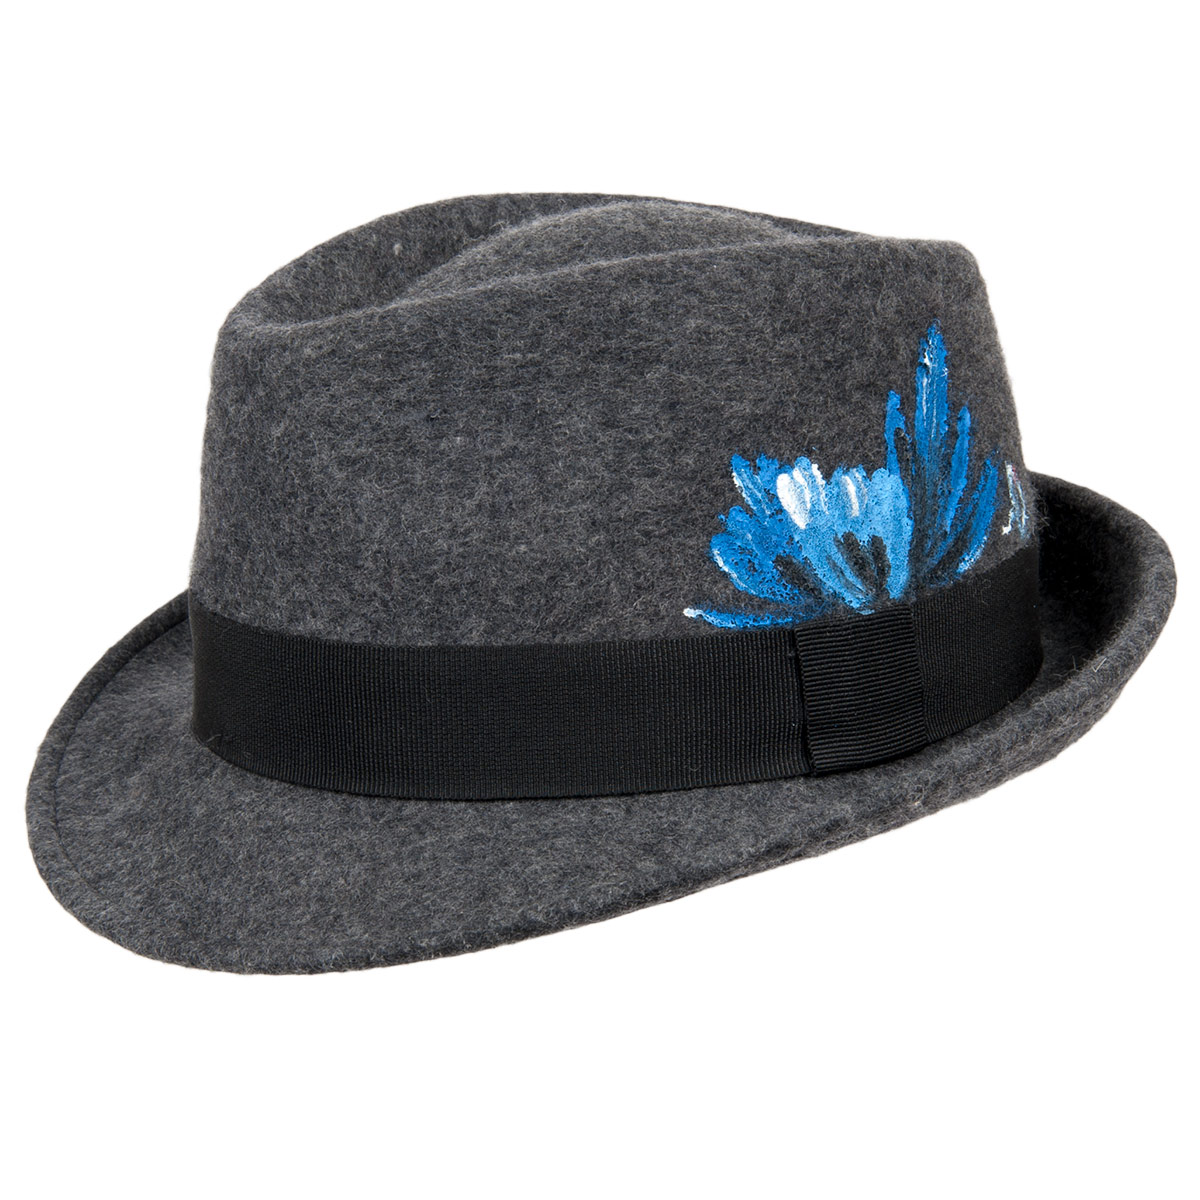 4fbed112a3bed hand painted trilby hat by ALFONSO D ESTE